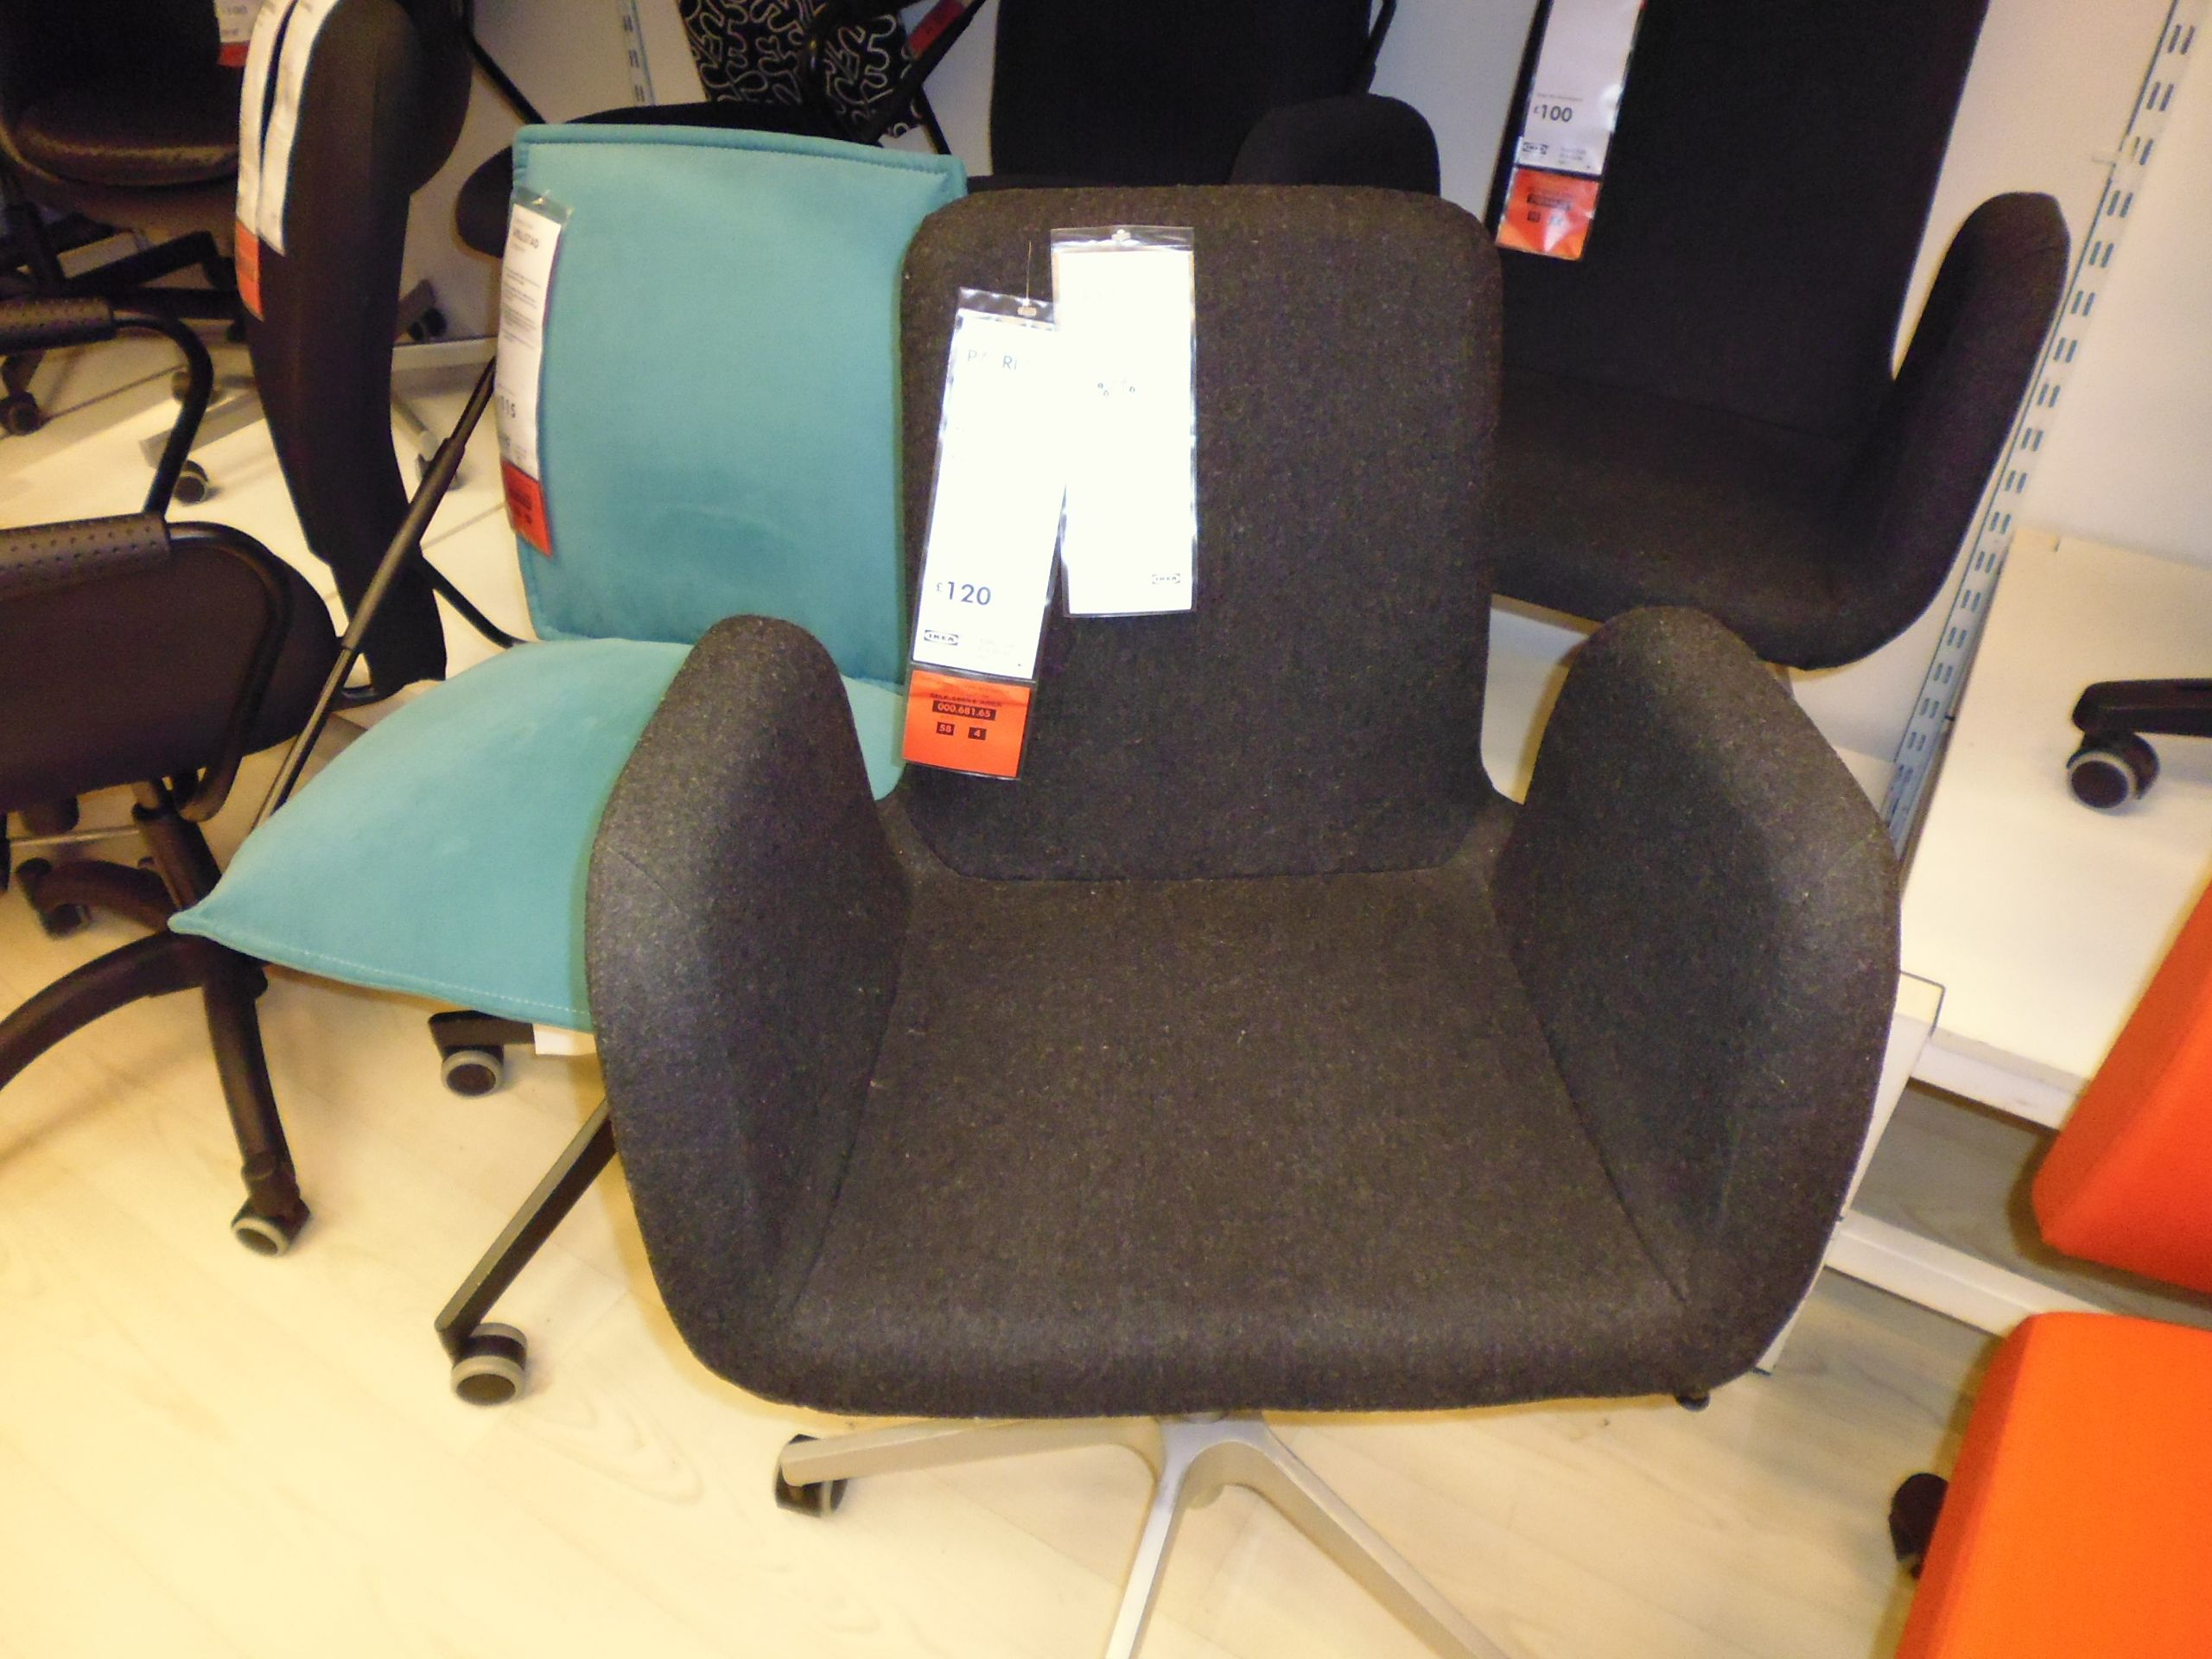 Ikea Patrik Swivel Chair Not Just For The Office